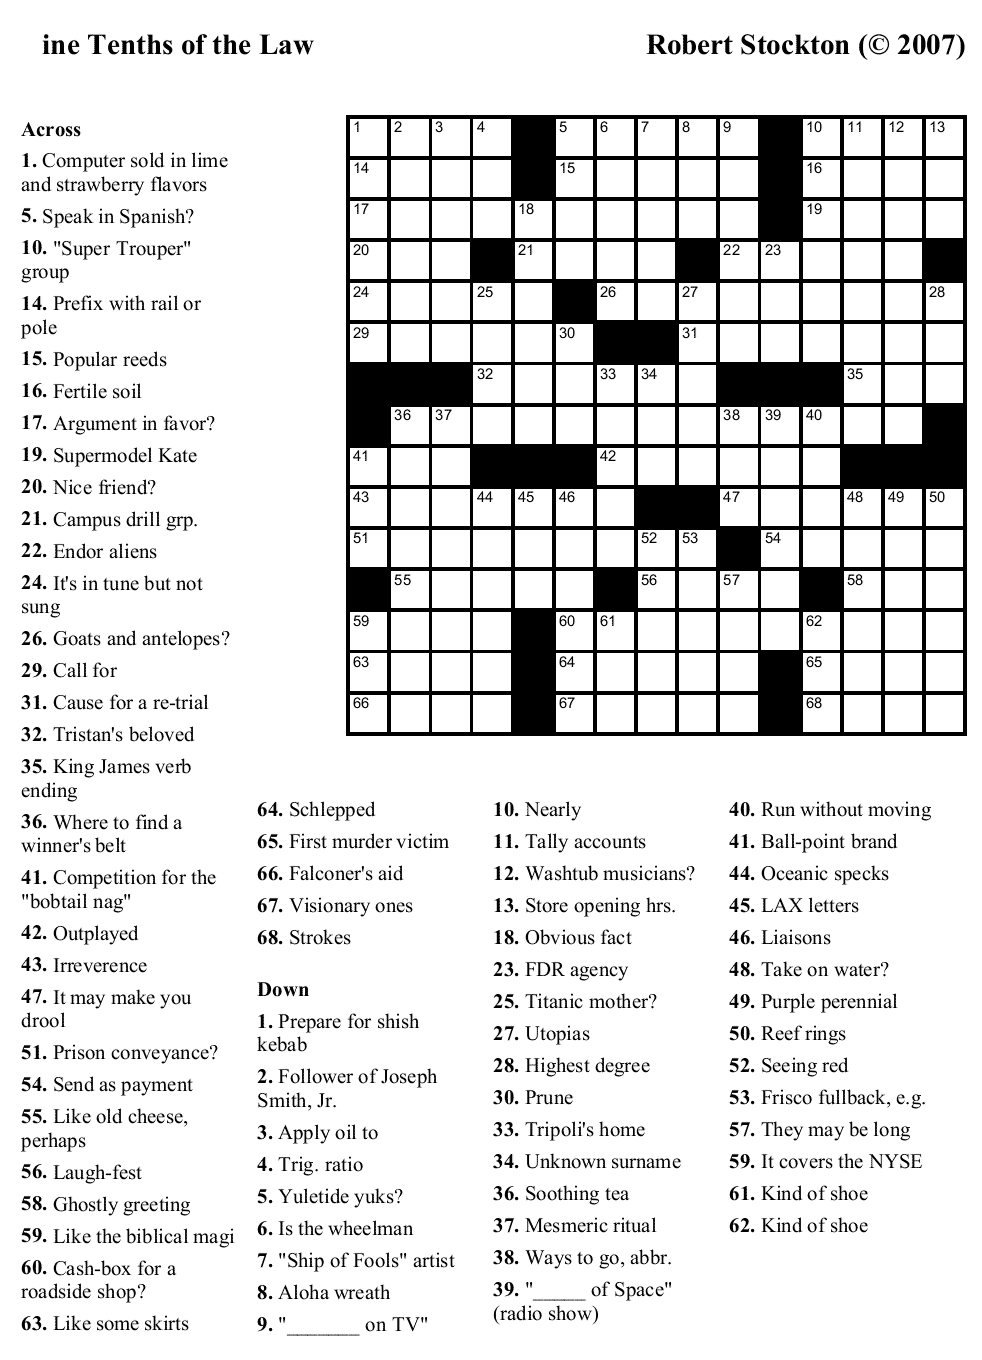 Easy Printable Crossword Puzzels - Infocap Ltd. - Free Printable Crossword Puzzles Uk